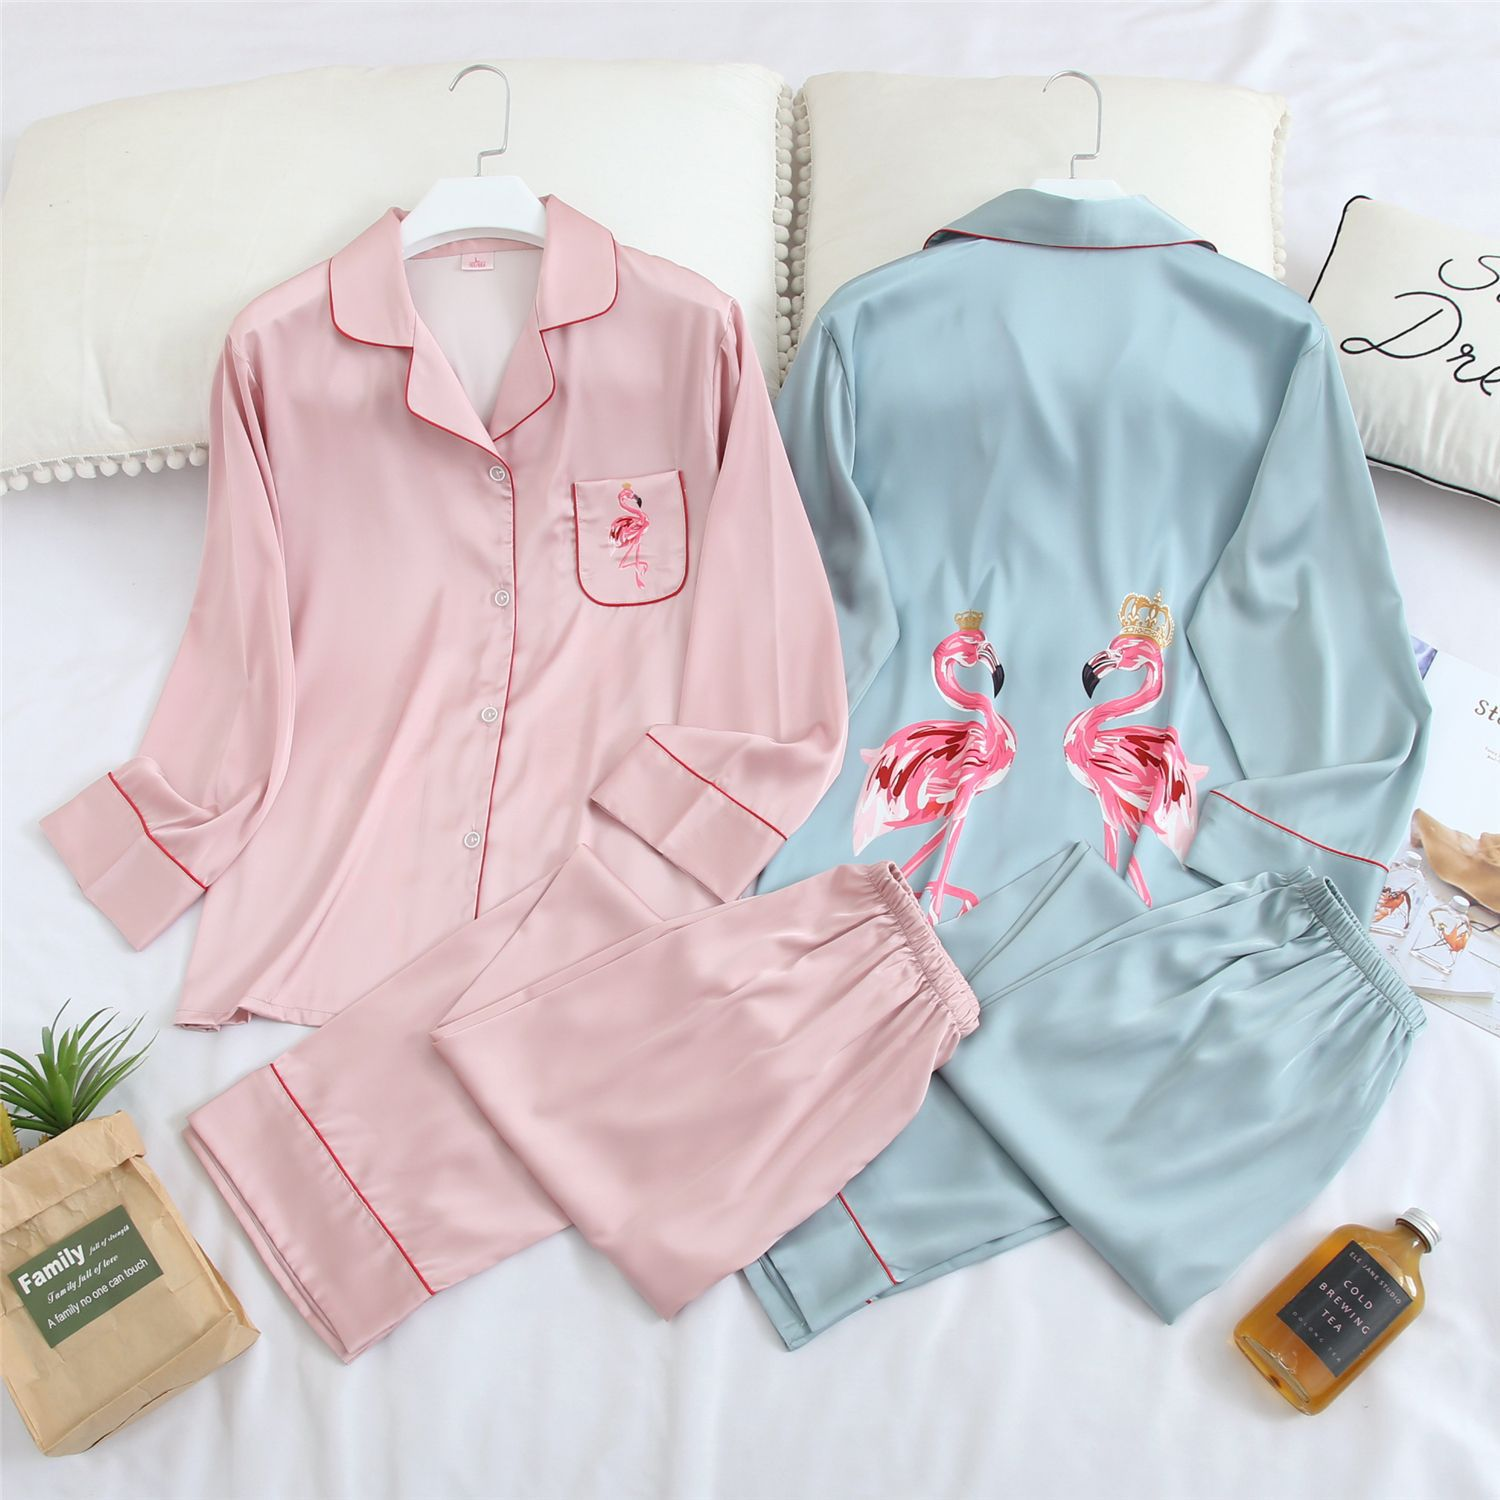 QWEEK Silk Women Pajamas Sleepwear Pijamas Ladies Pyjamas Satin Sleep Lounge Home Clothes Nightwear Flamingo Print Homewear